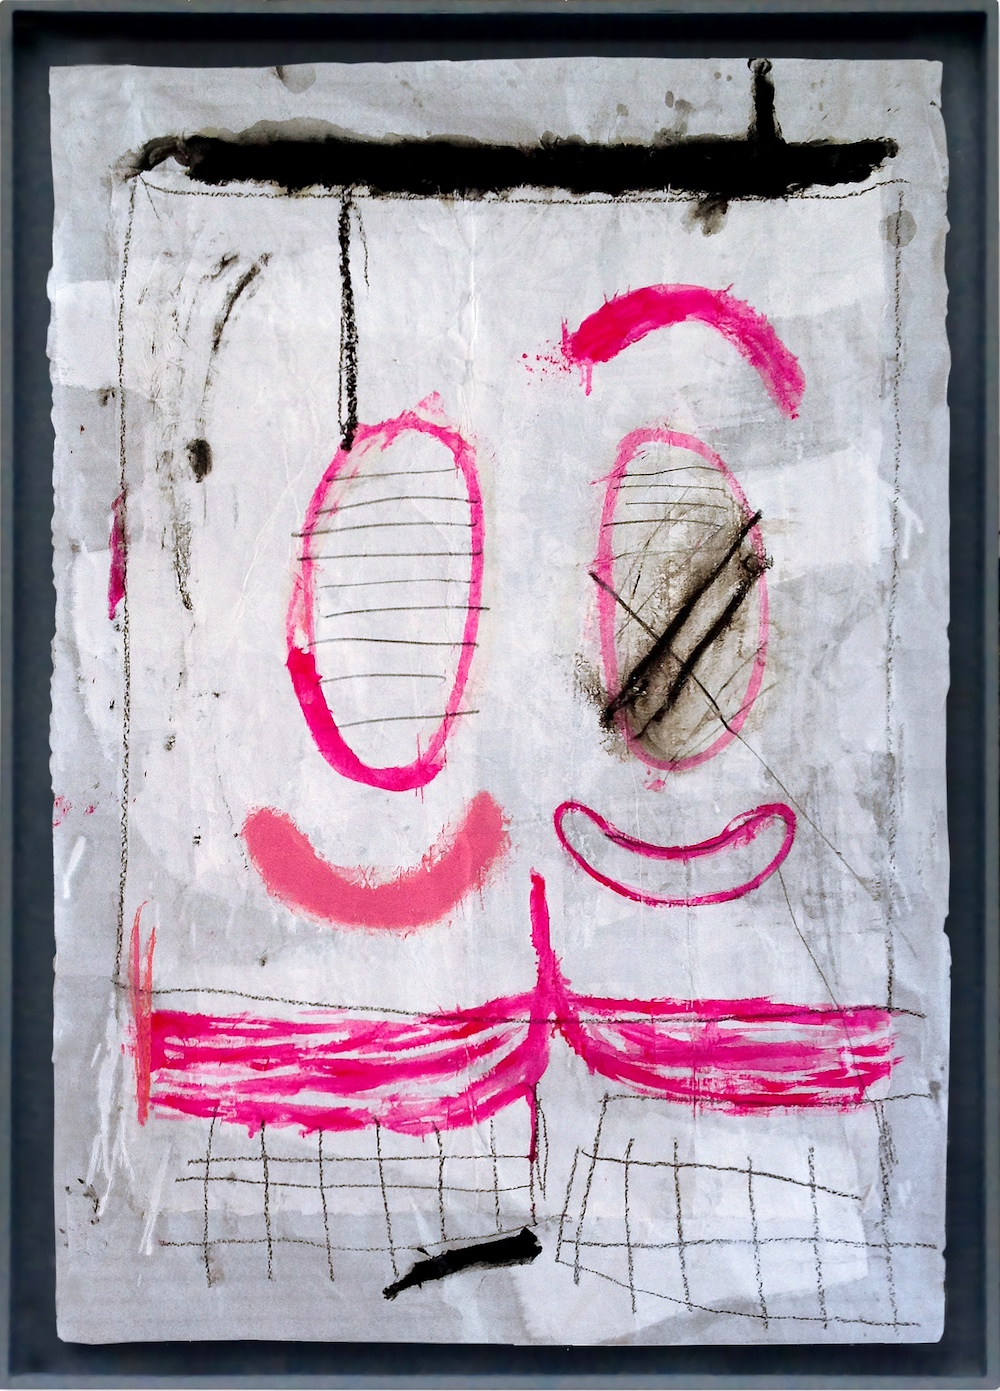 "Claudia Barthoi ""Clown"", 2016, collage, Oil and graphite on layers of paper, 96 x 72 cm, [38 x 28 inches]. Framed in wooden case."